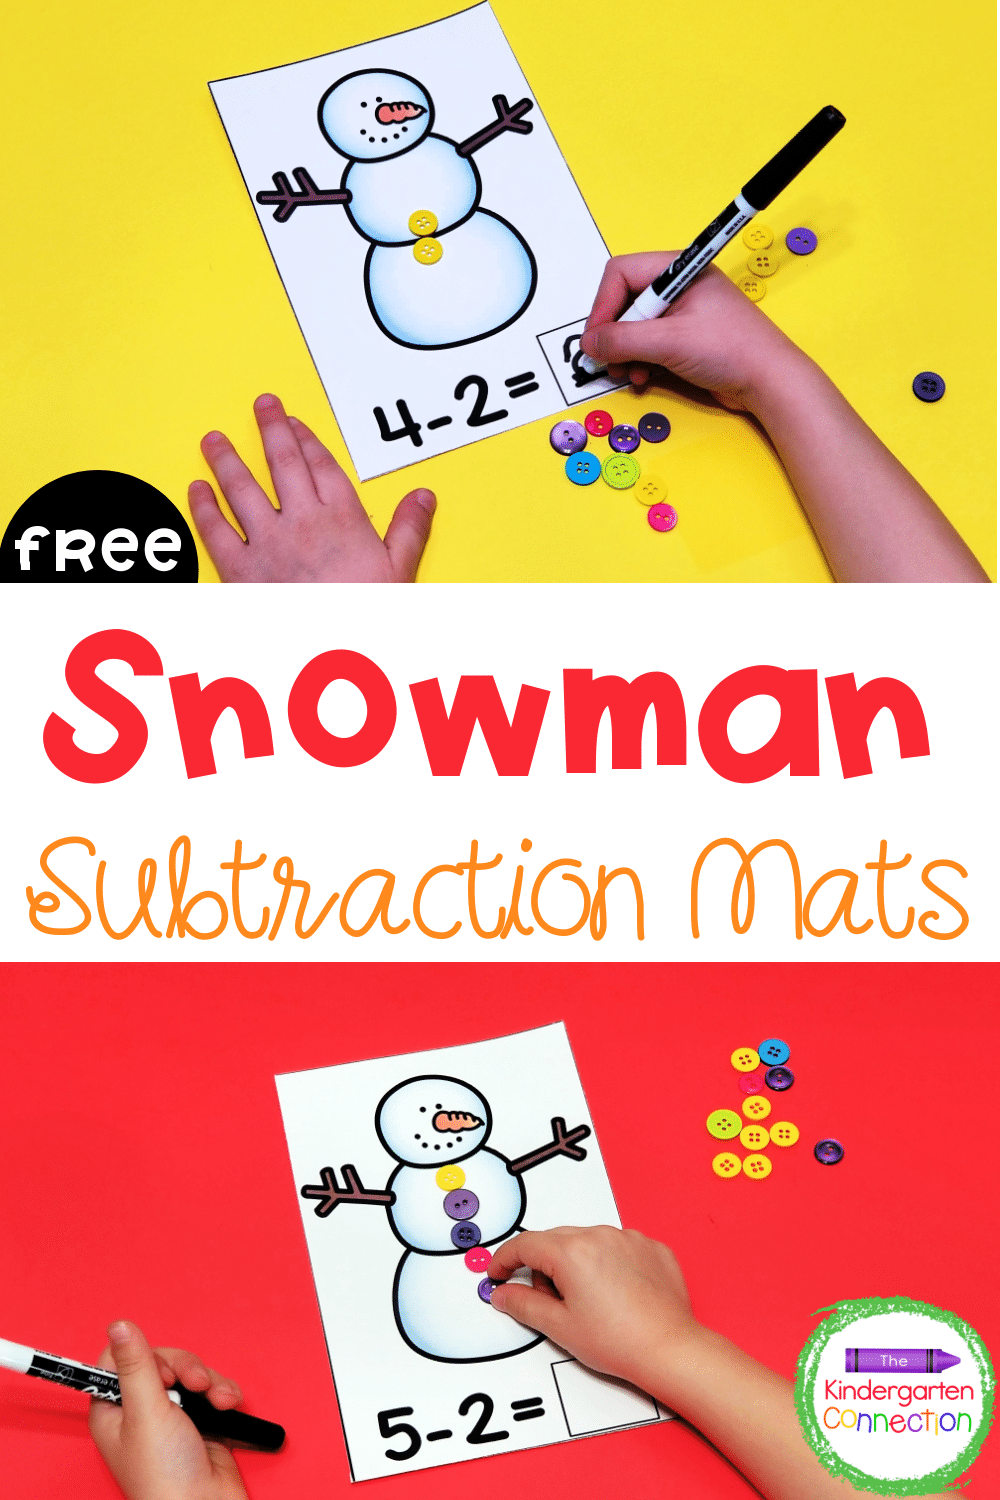 These free snowman subtraction mats make a fun, seasonal math center for Kindergarteners or 1st graders working on subtraction up to 6!